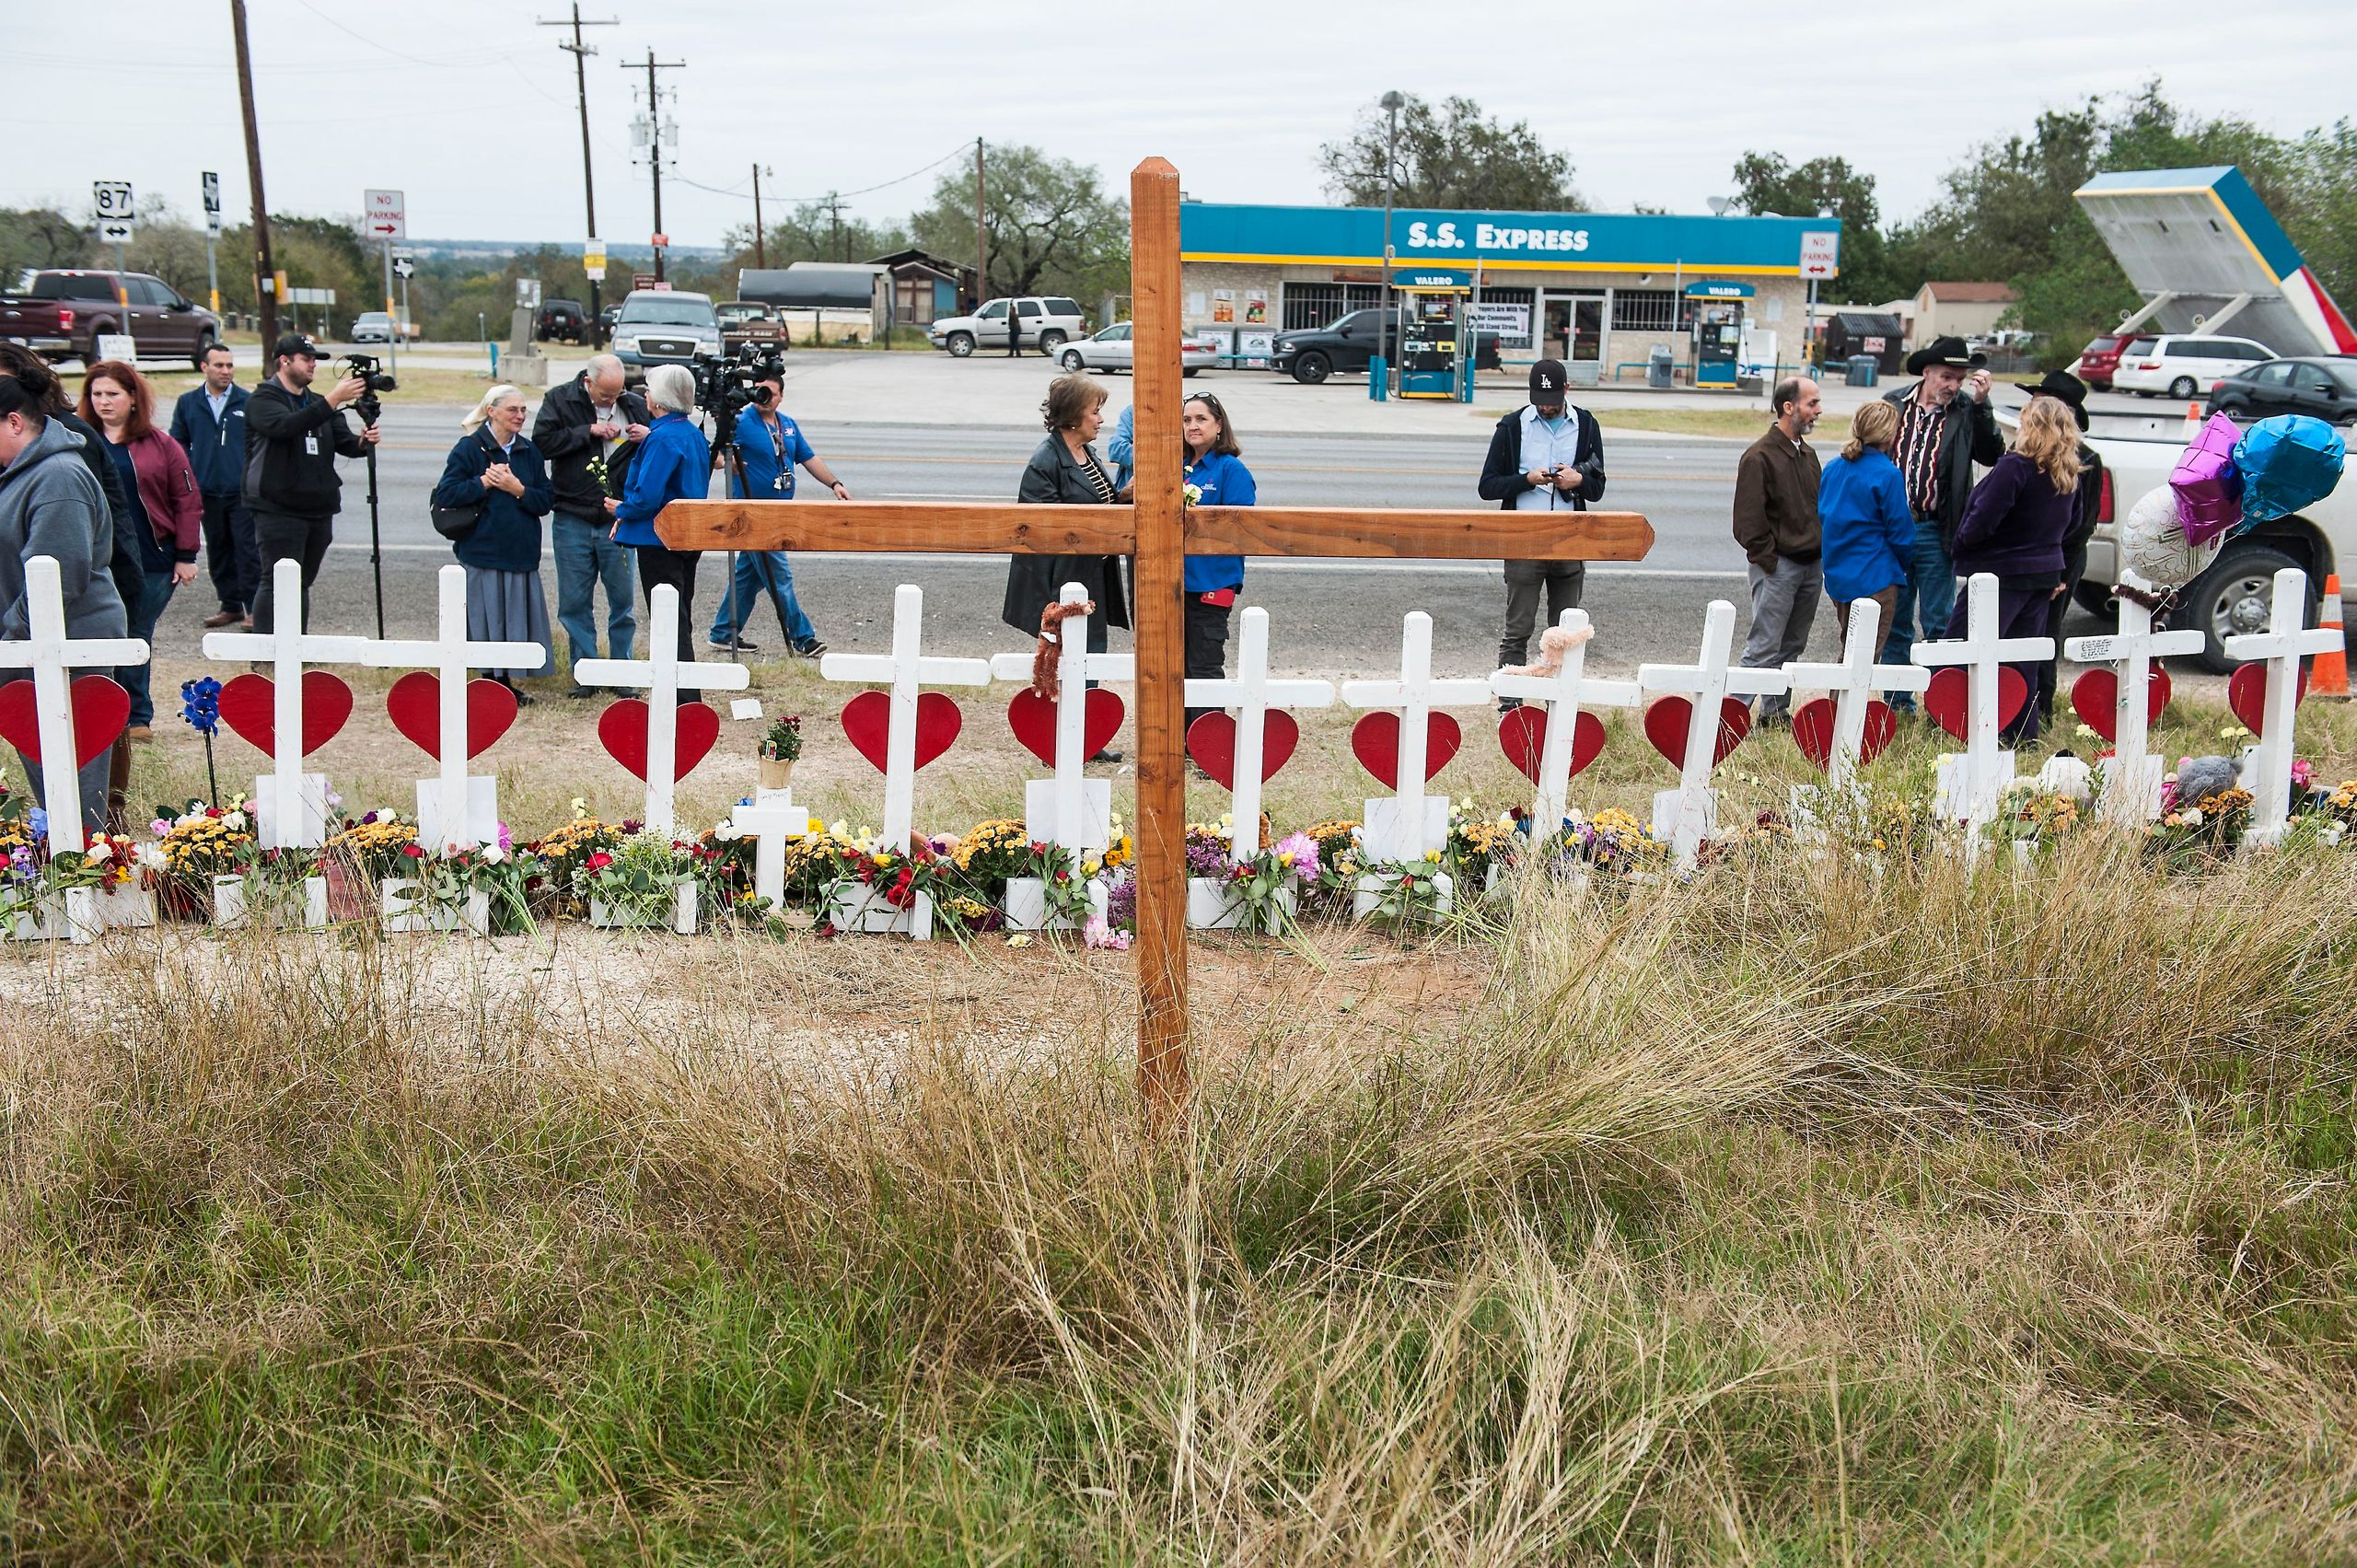 The crosses, erected across the street from the church, have become a meeting ground for mourners.